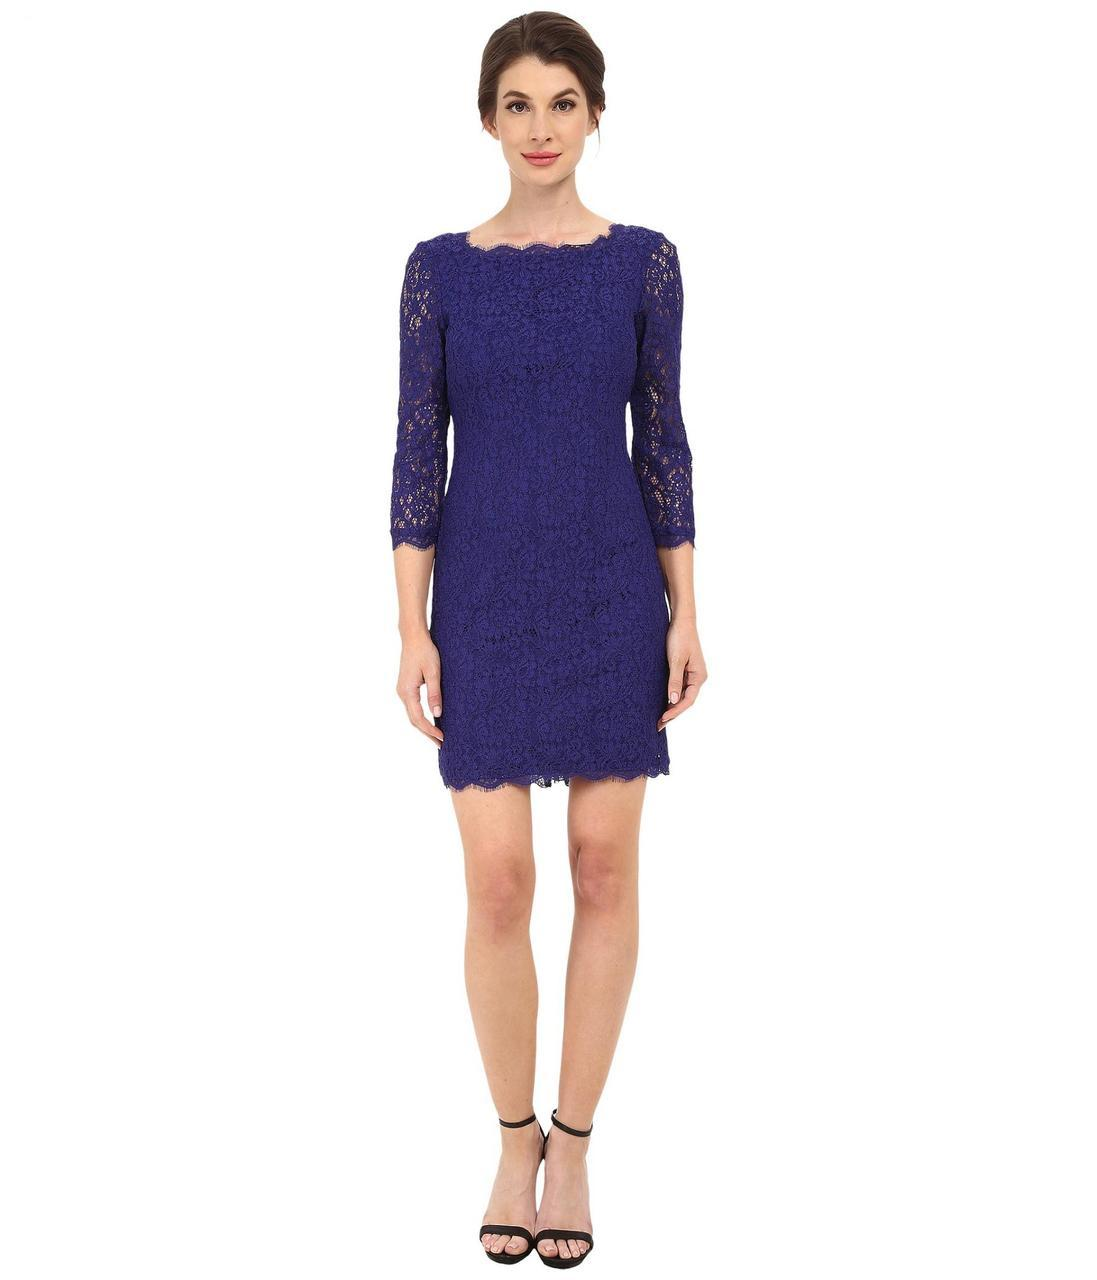 Adrianna Papell - Quarter Length Sleeve Lace Dress 41864780 in Purple